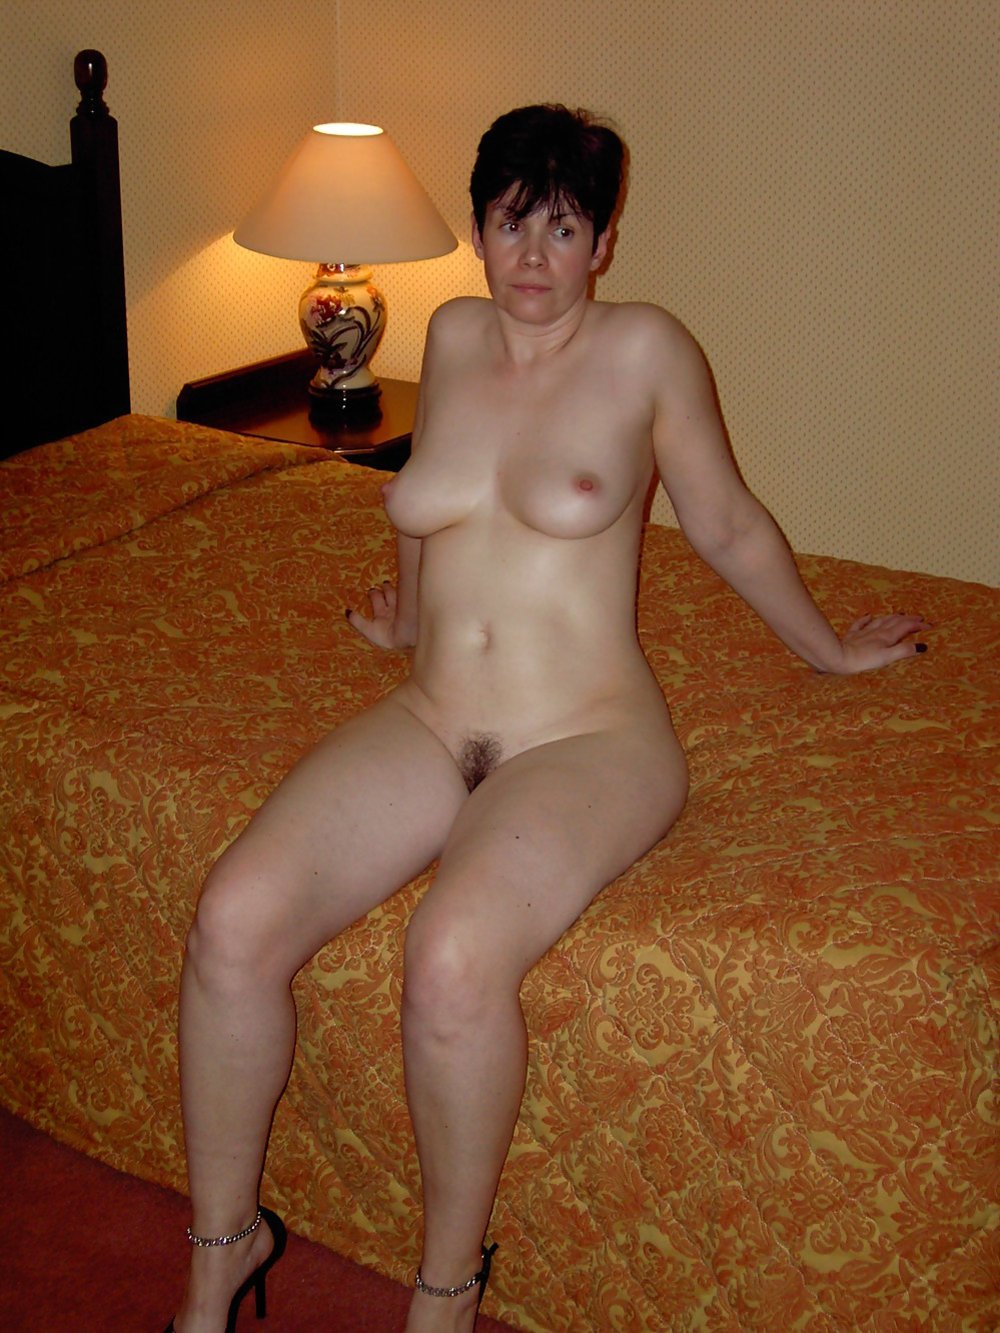 Anyone for a swingin threesome XXX Quality images site